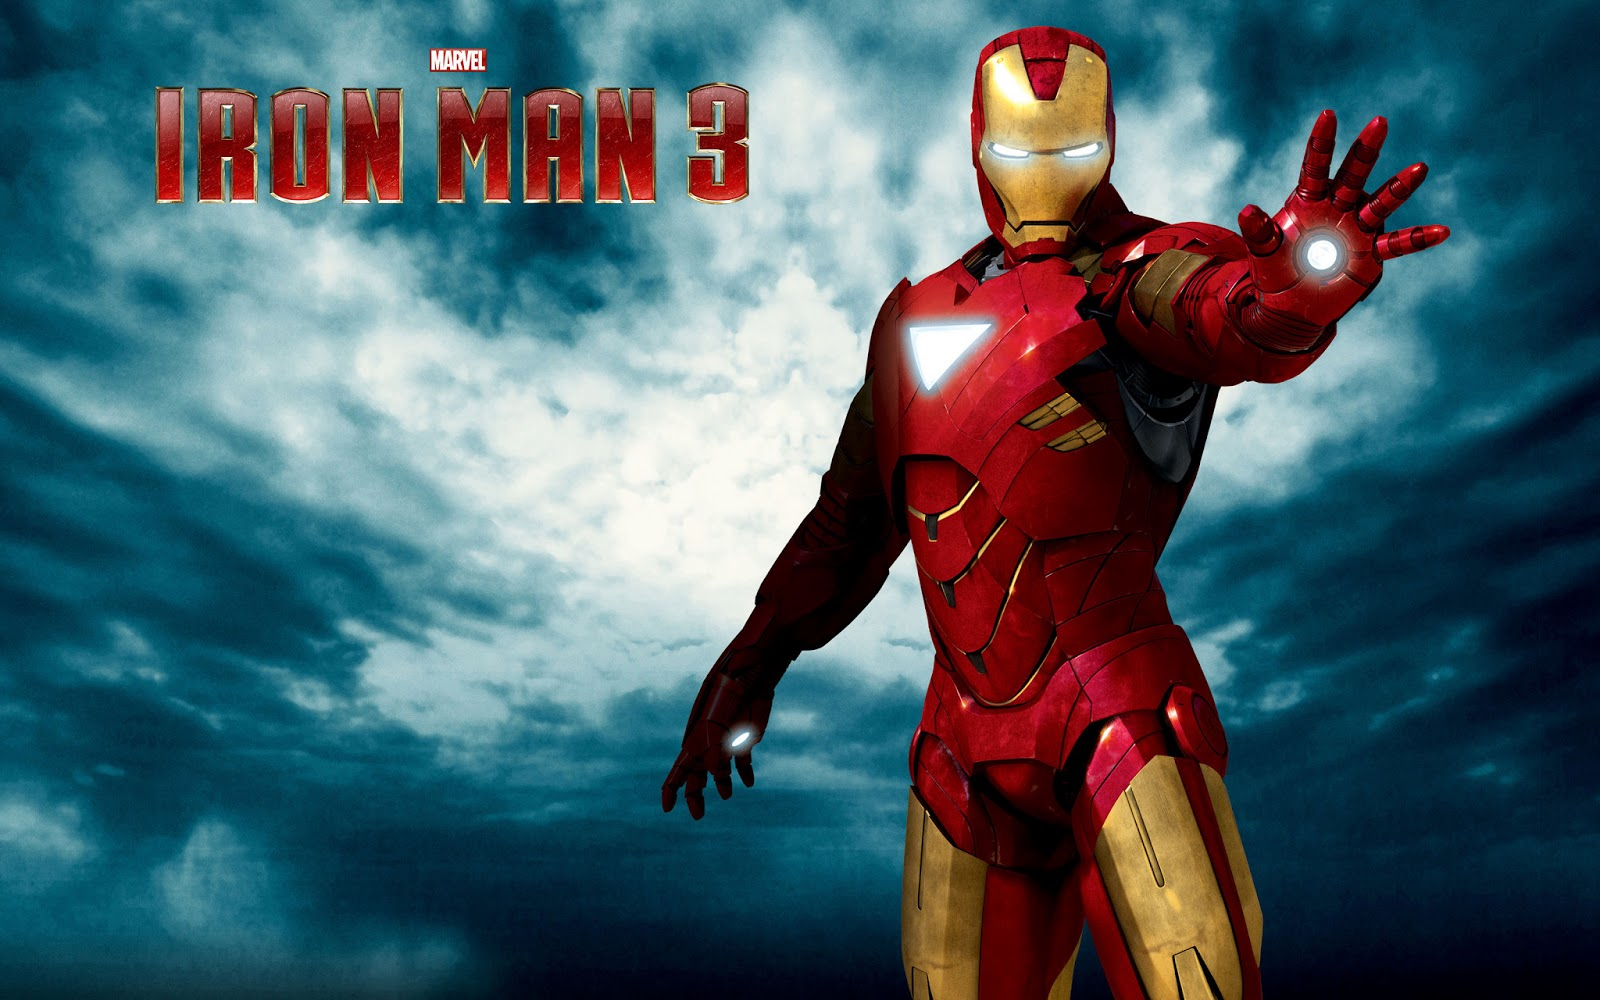 hd wallpapers: iron man 3 wallpapers